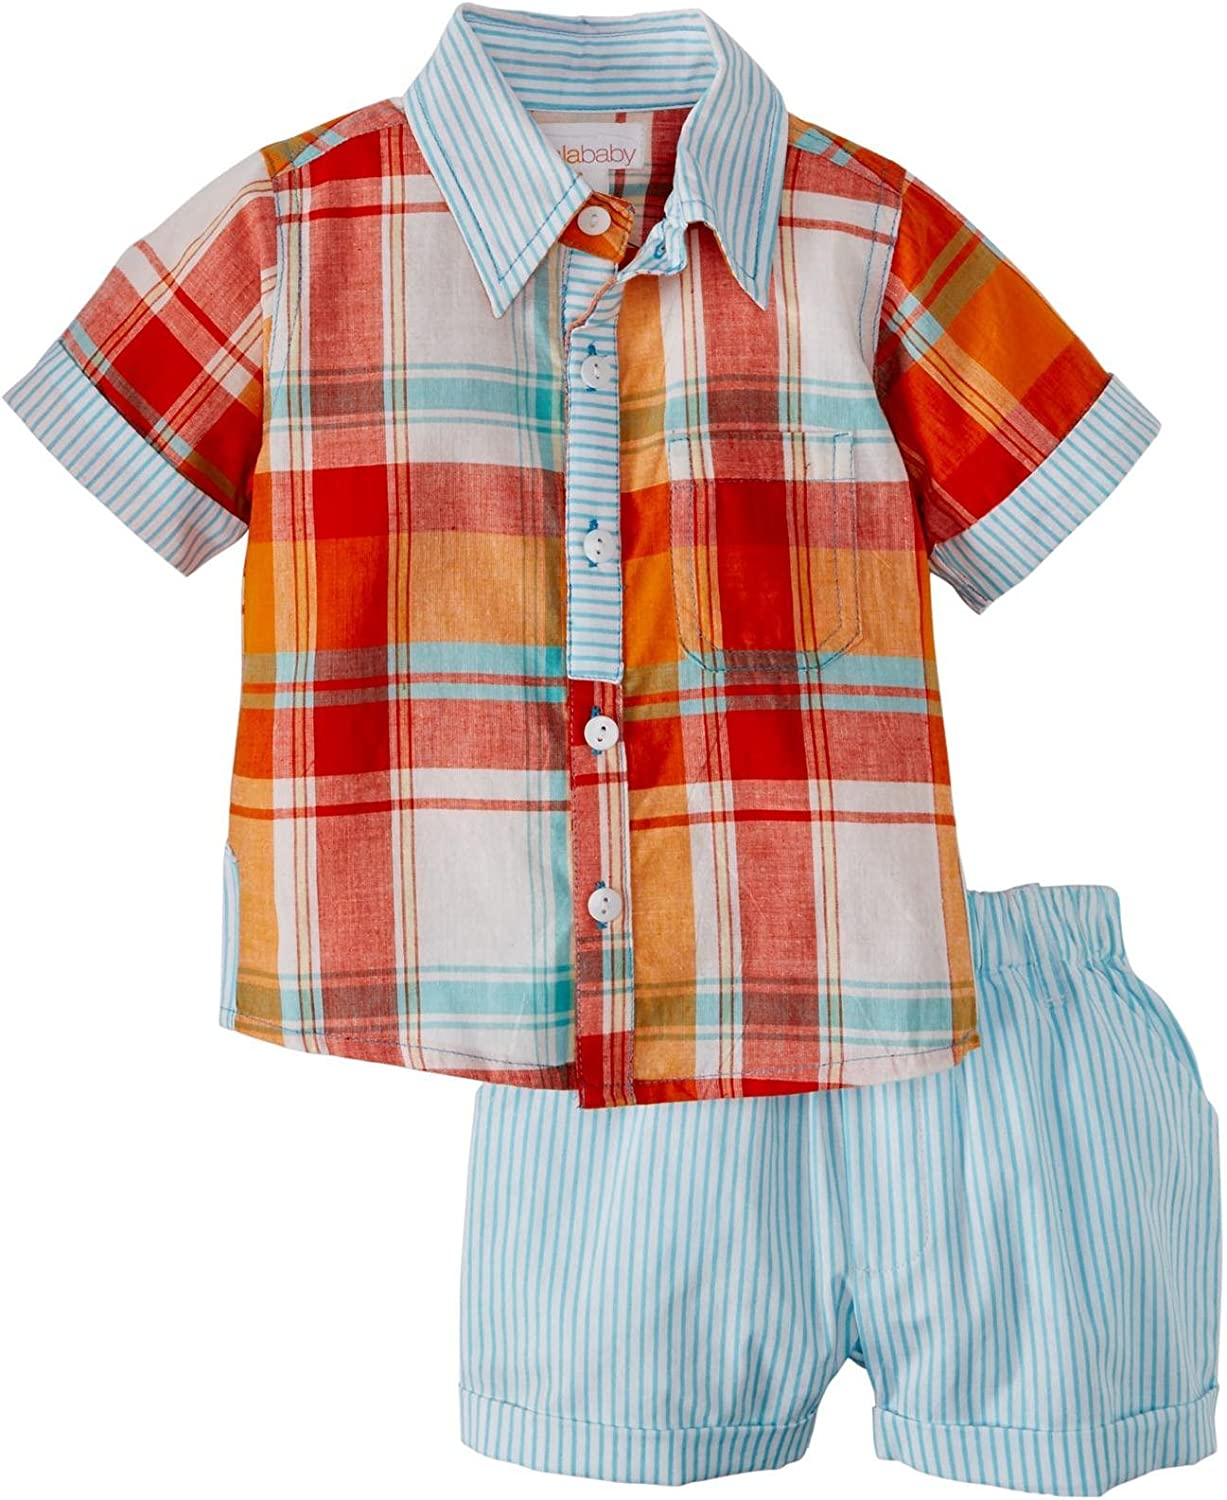 Masala Neat Shirt 2 Piece Limited Save money time for free shipping Months Baby - Orange-6-12 Set